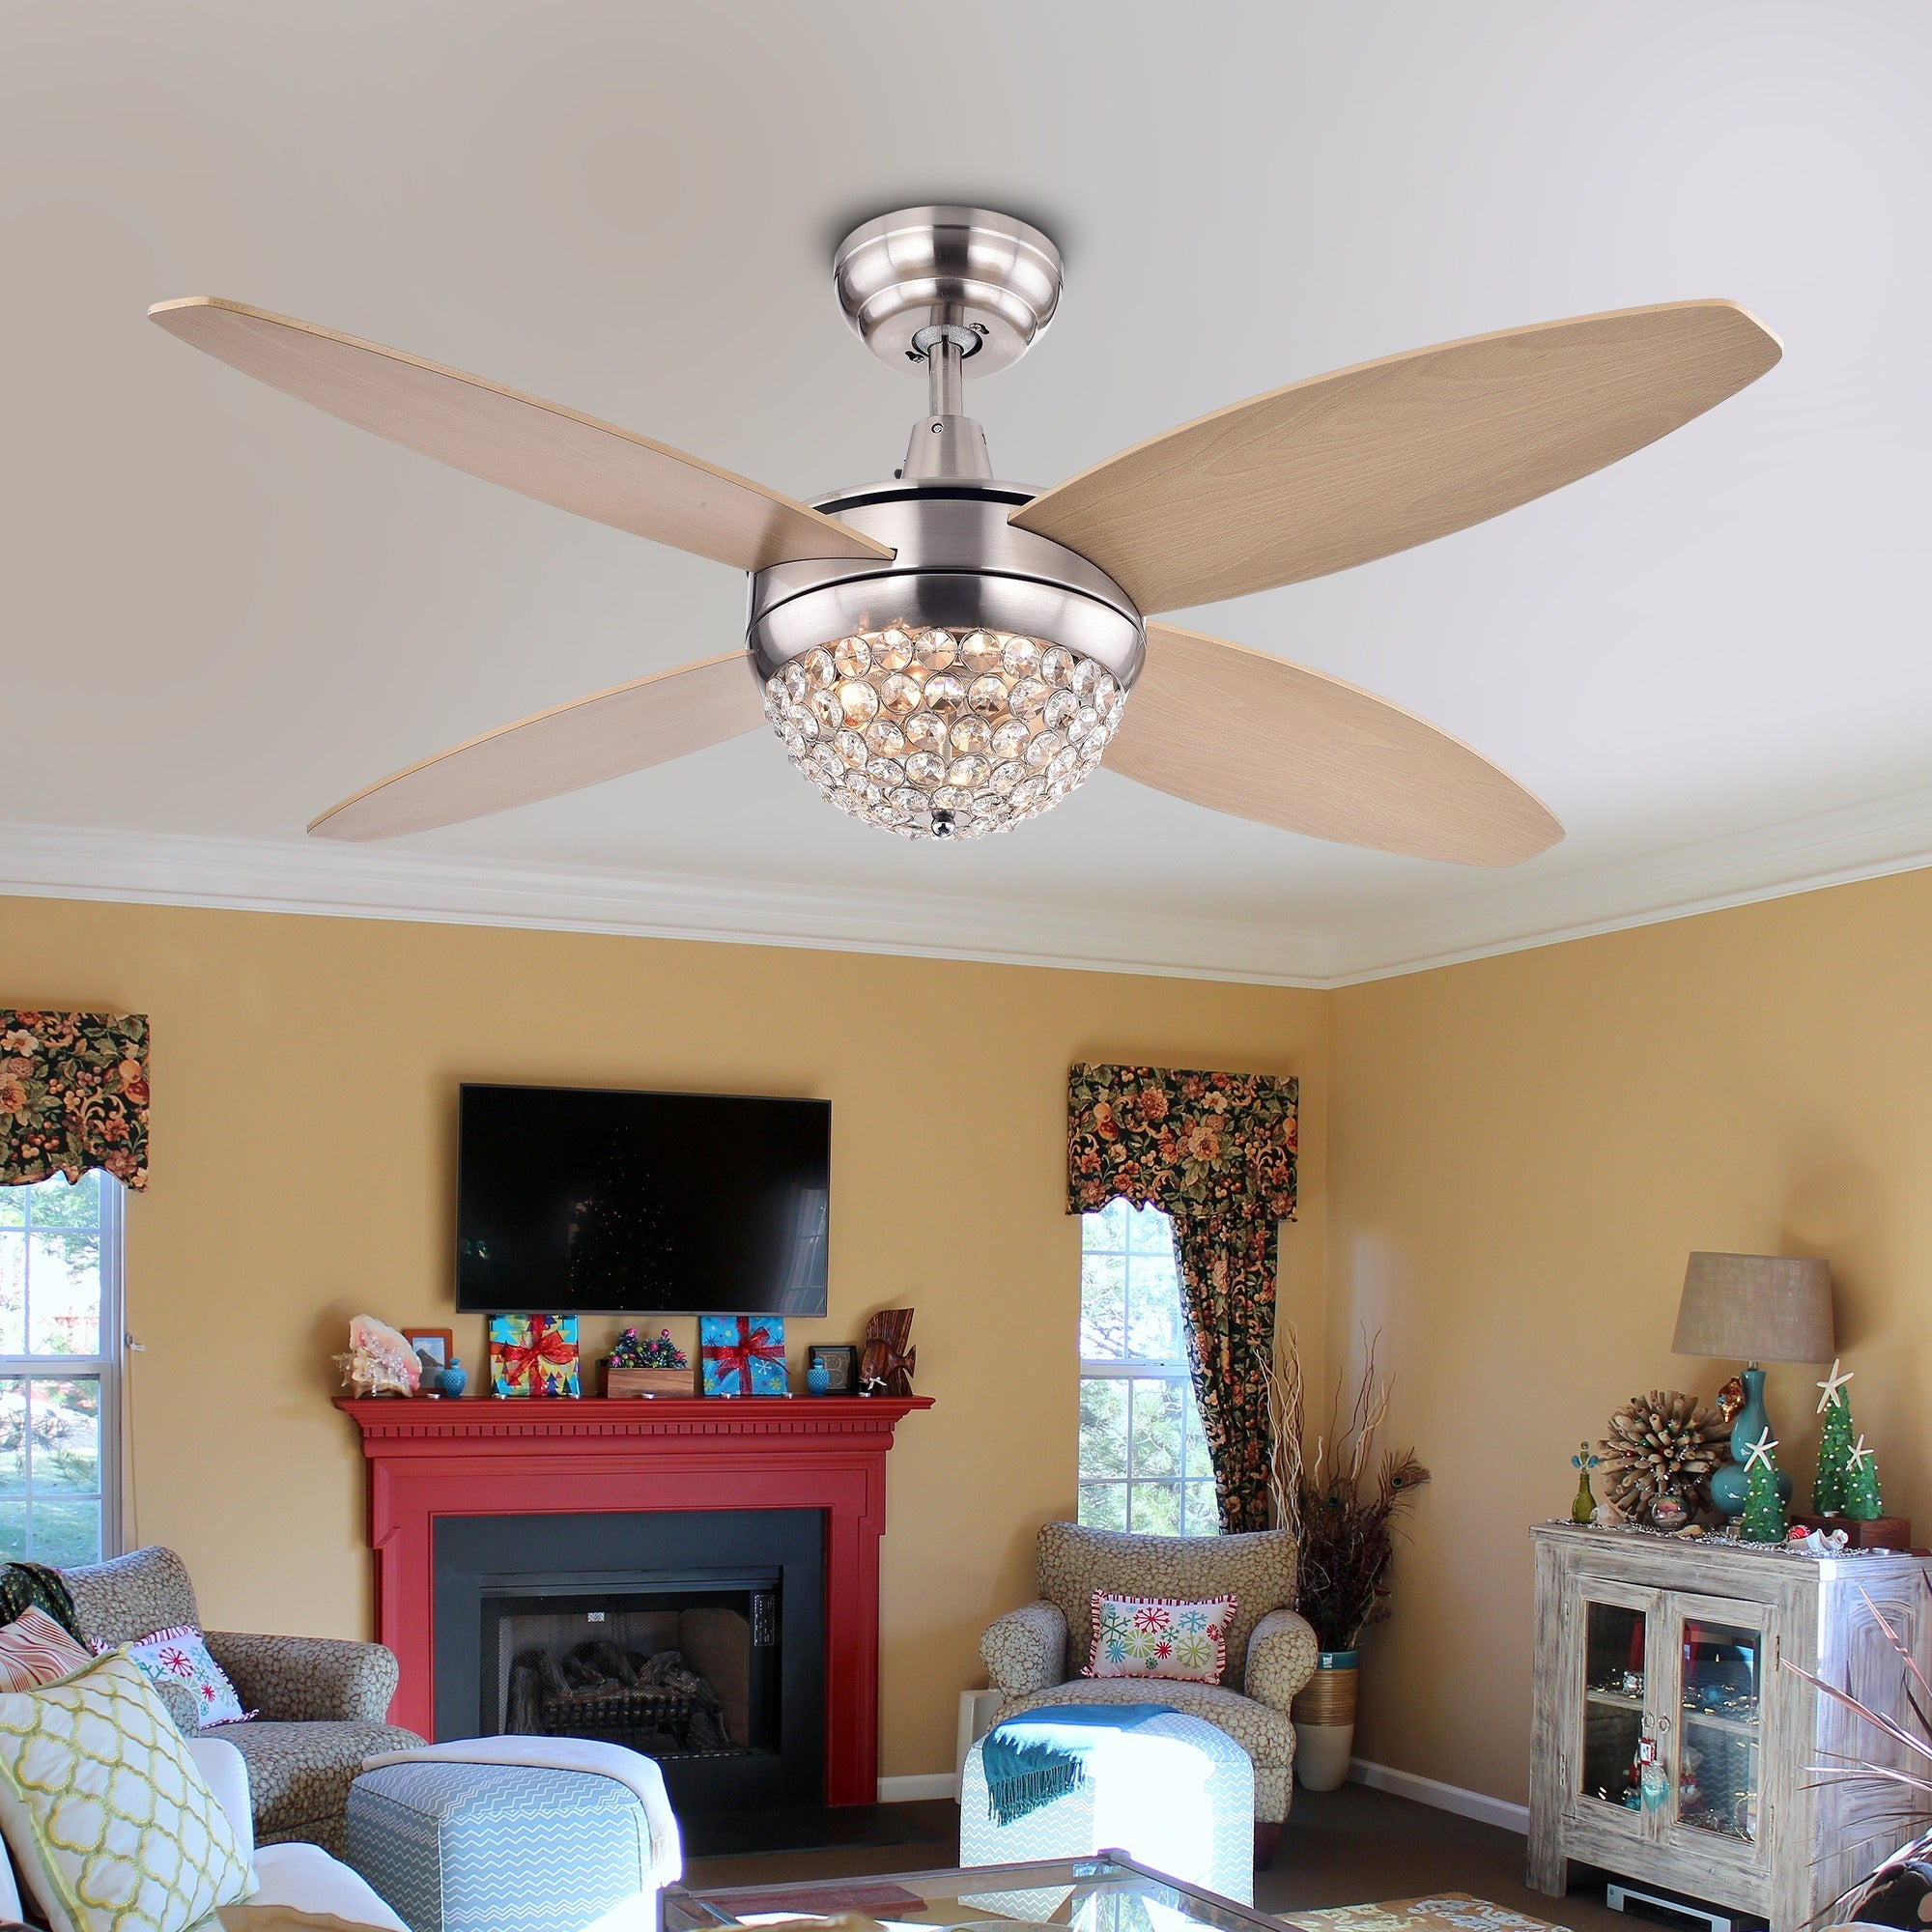 Balavis Wood Nickel 2 light 4 blade Crystal 46 inch Ceiling Fan